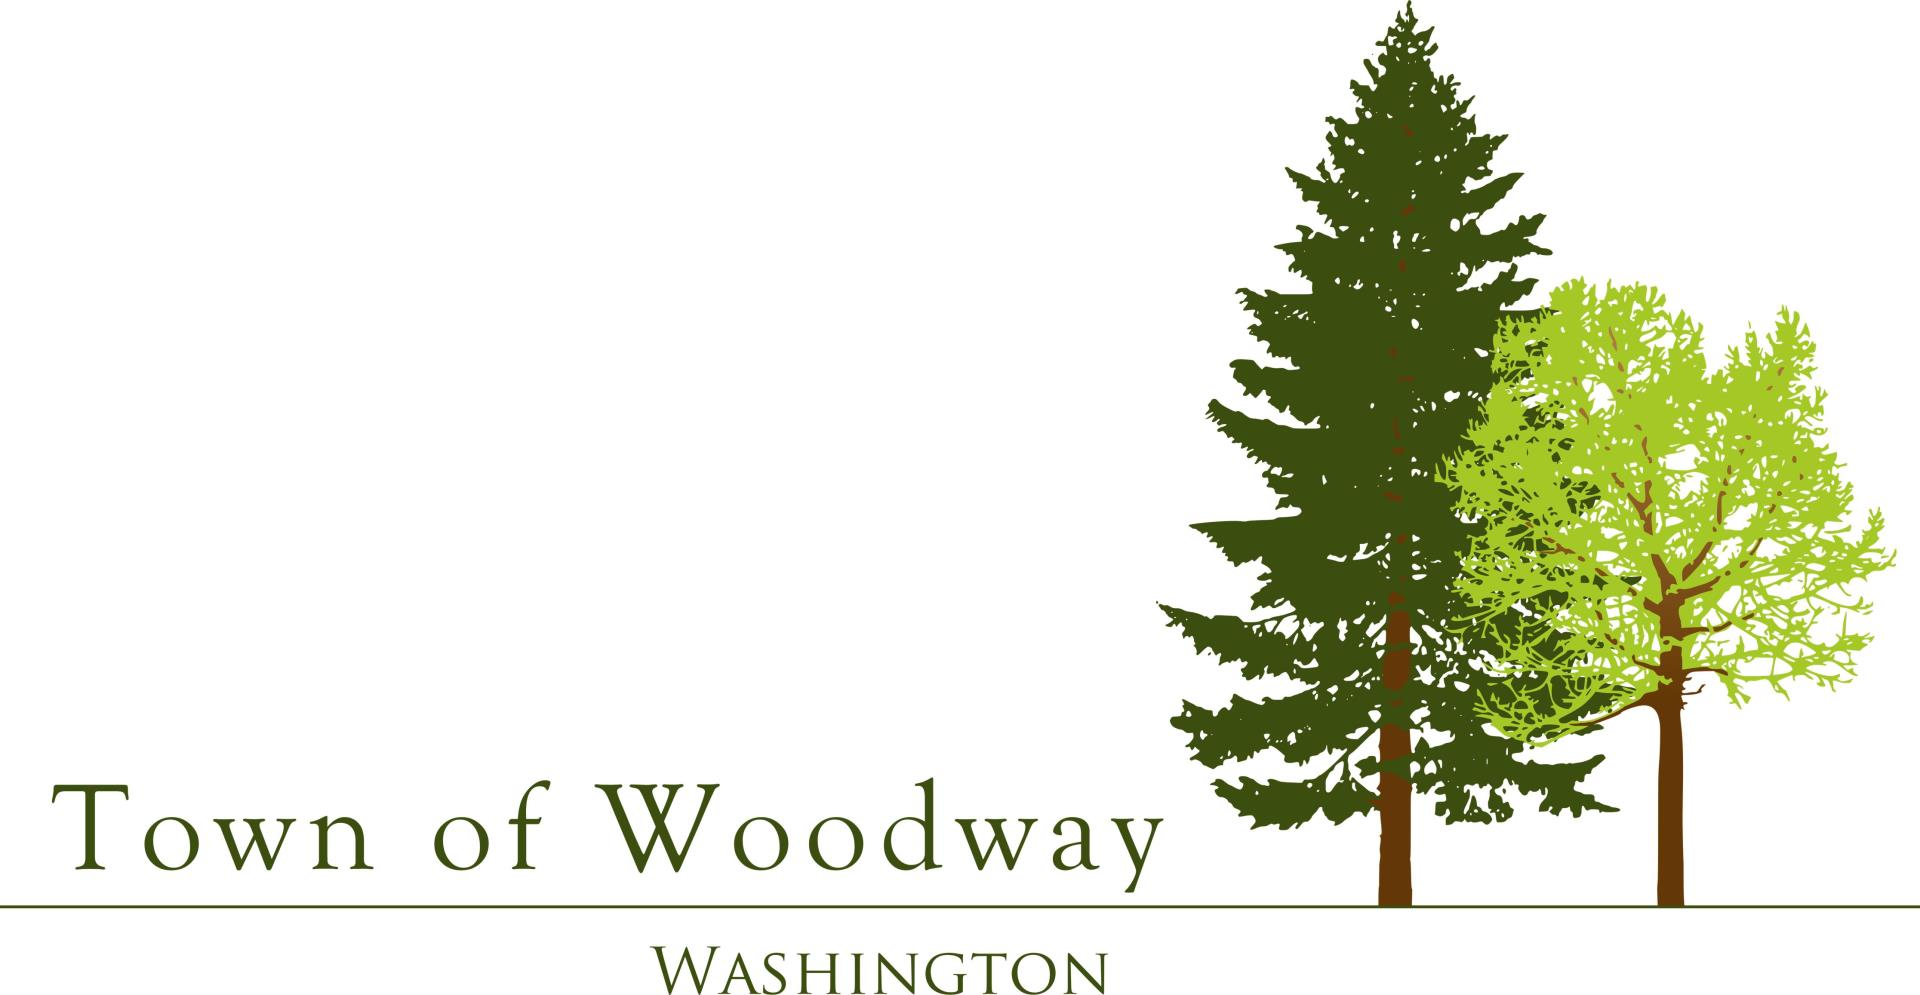 Logo for the Town of Woodway